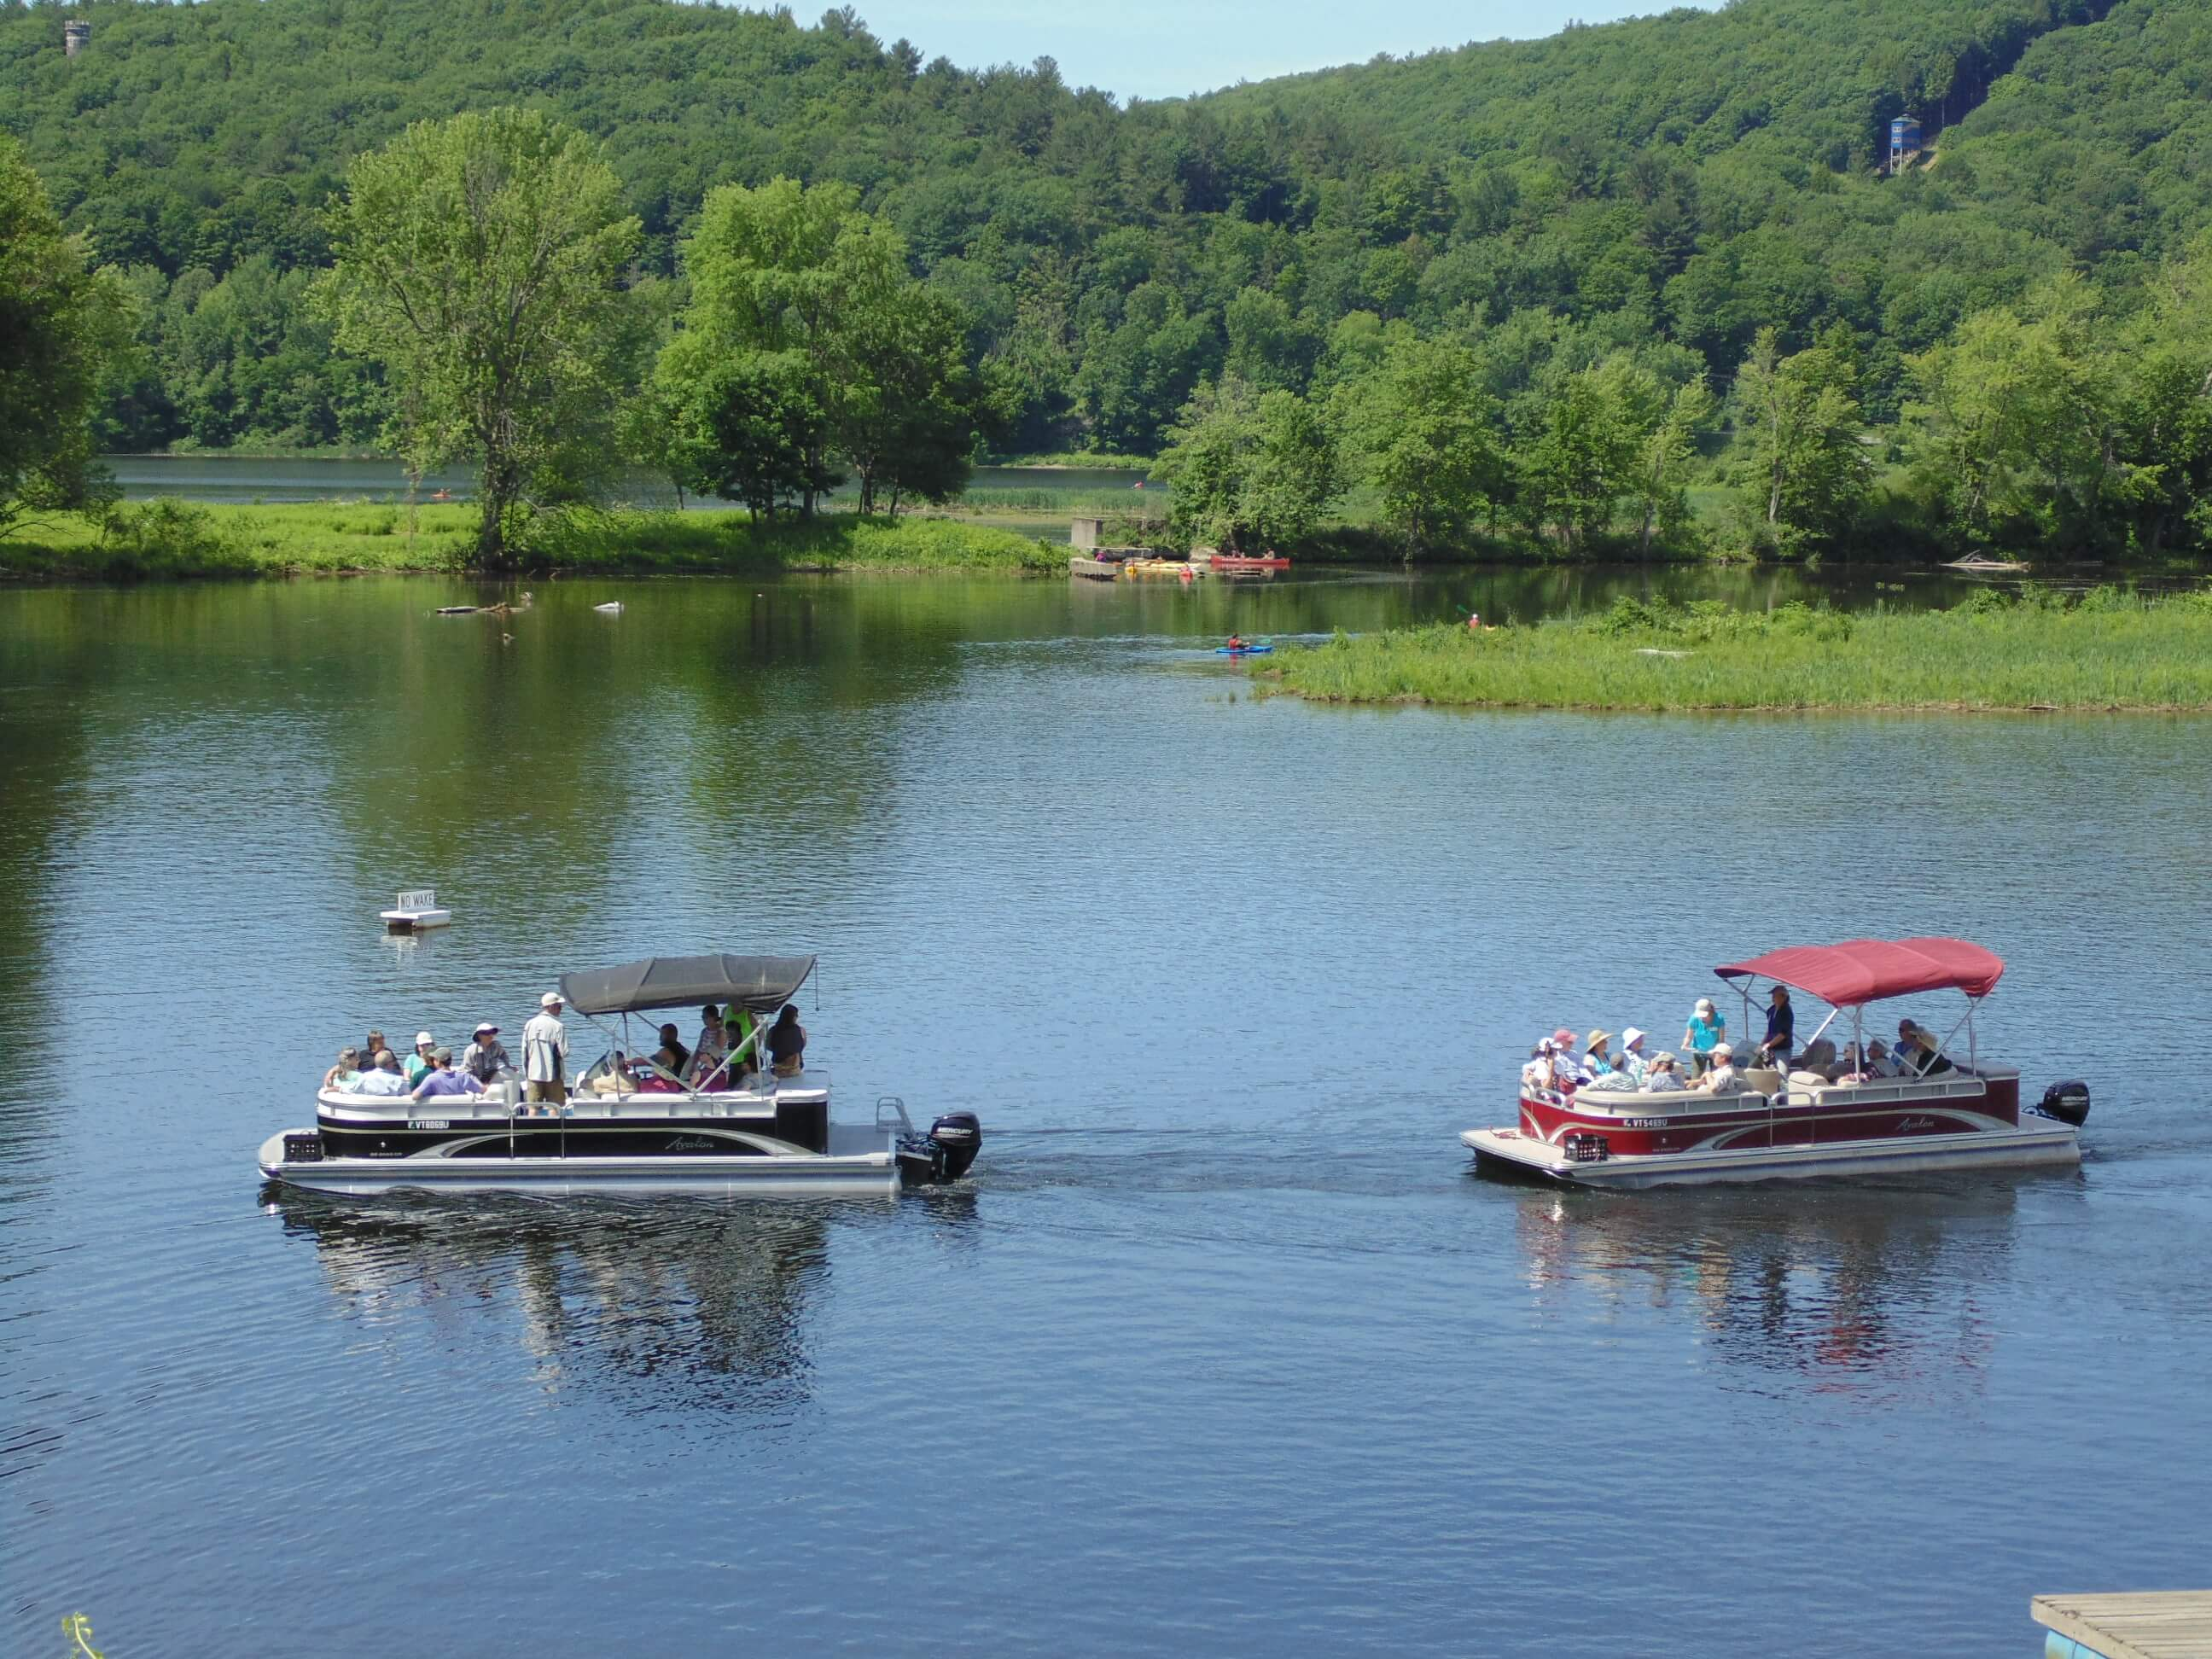 Pontoon boats on the CT River